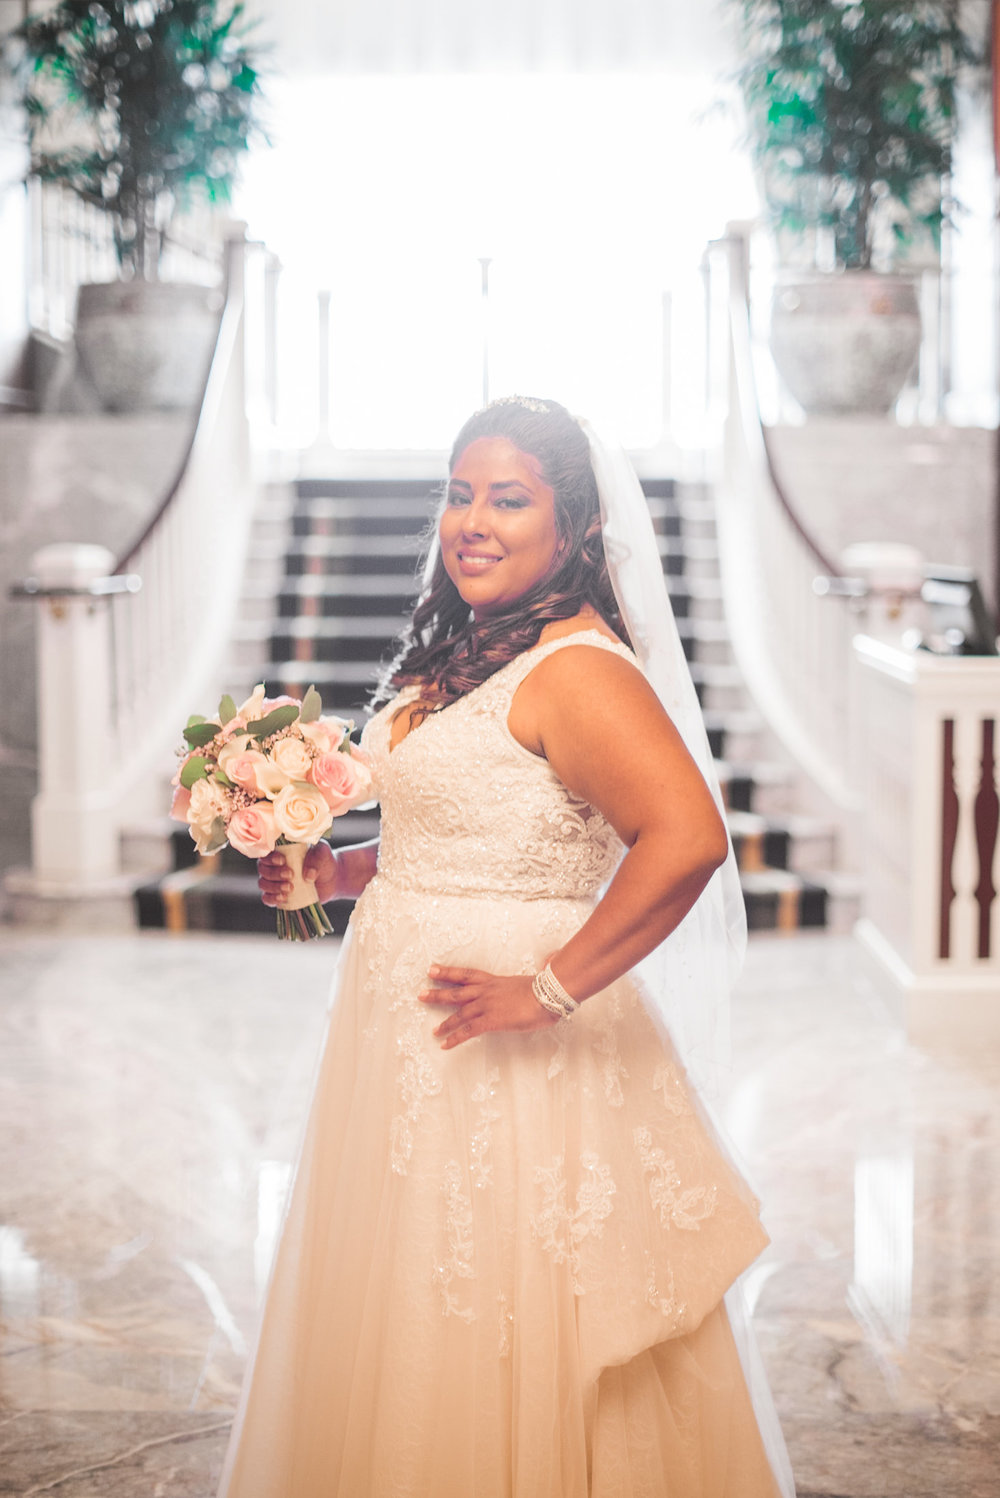 Bride standing in front of stairs in sun